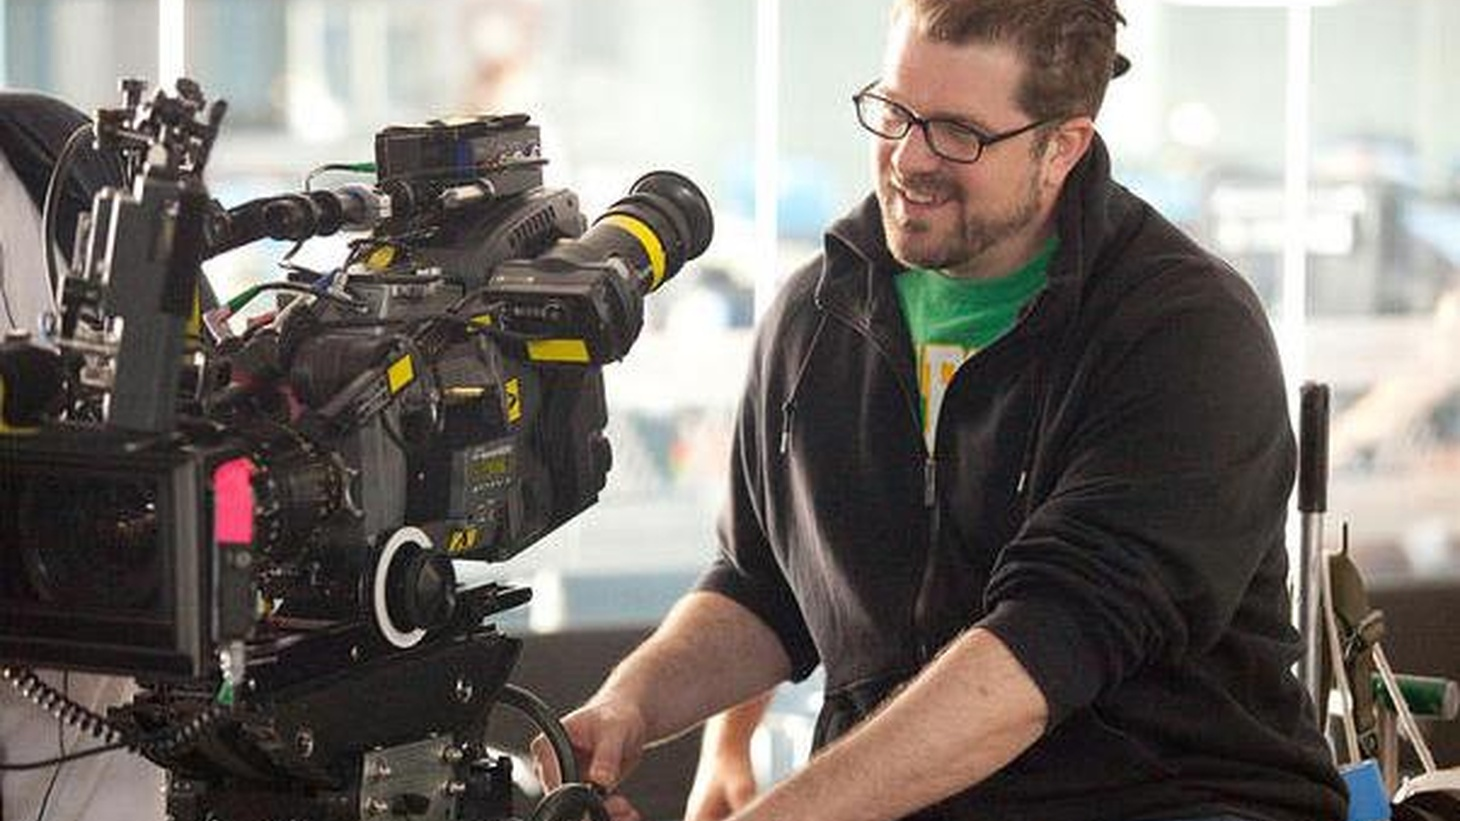 Director Seth Gordon moves from documentary work to comedy, with his latest film, Horrible Bosses...